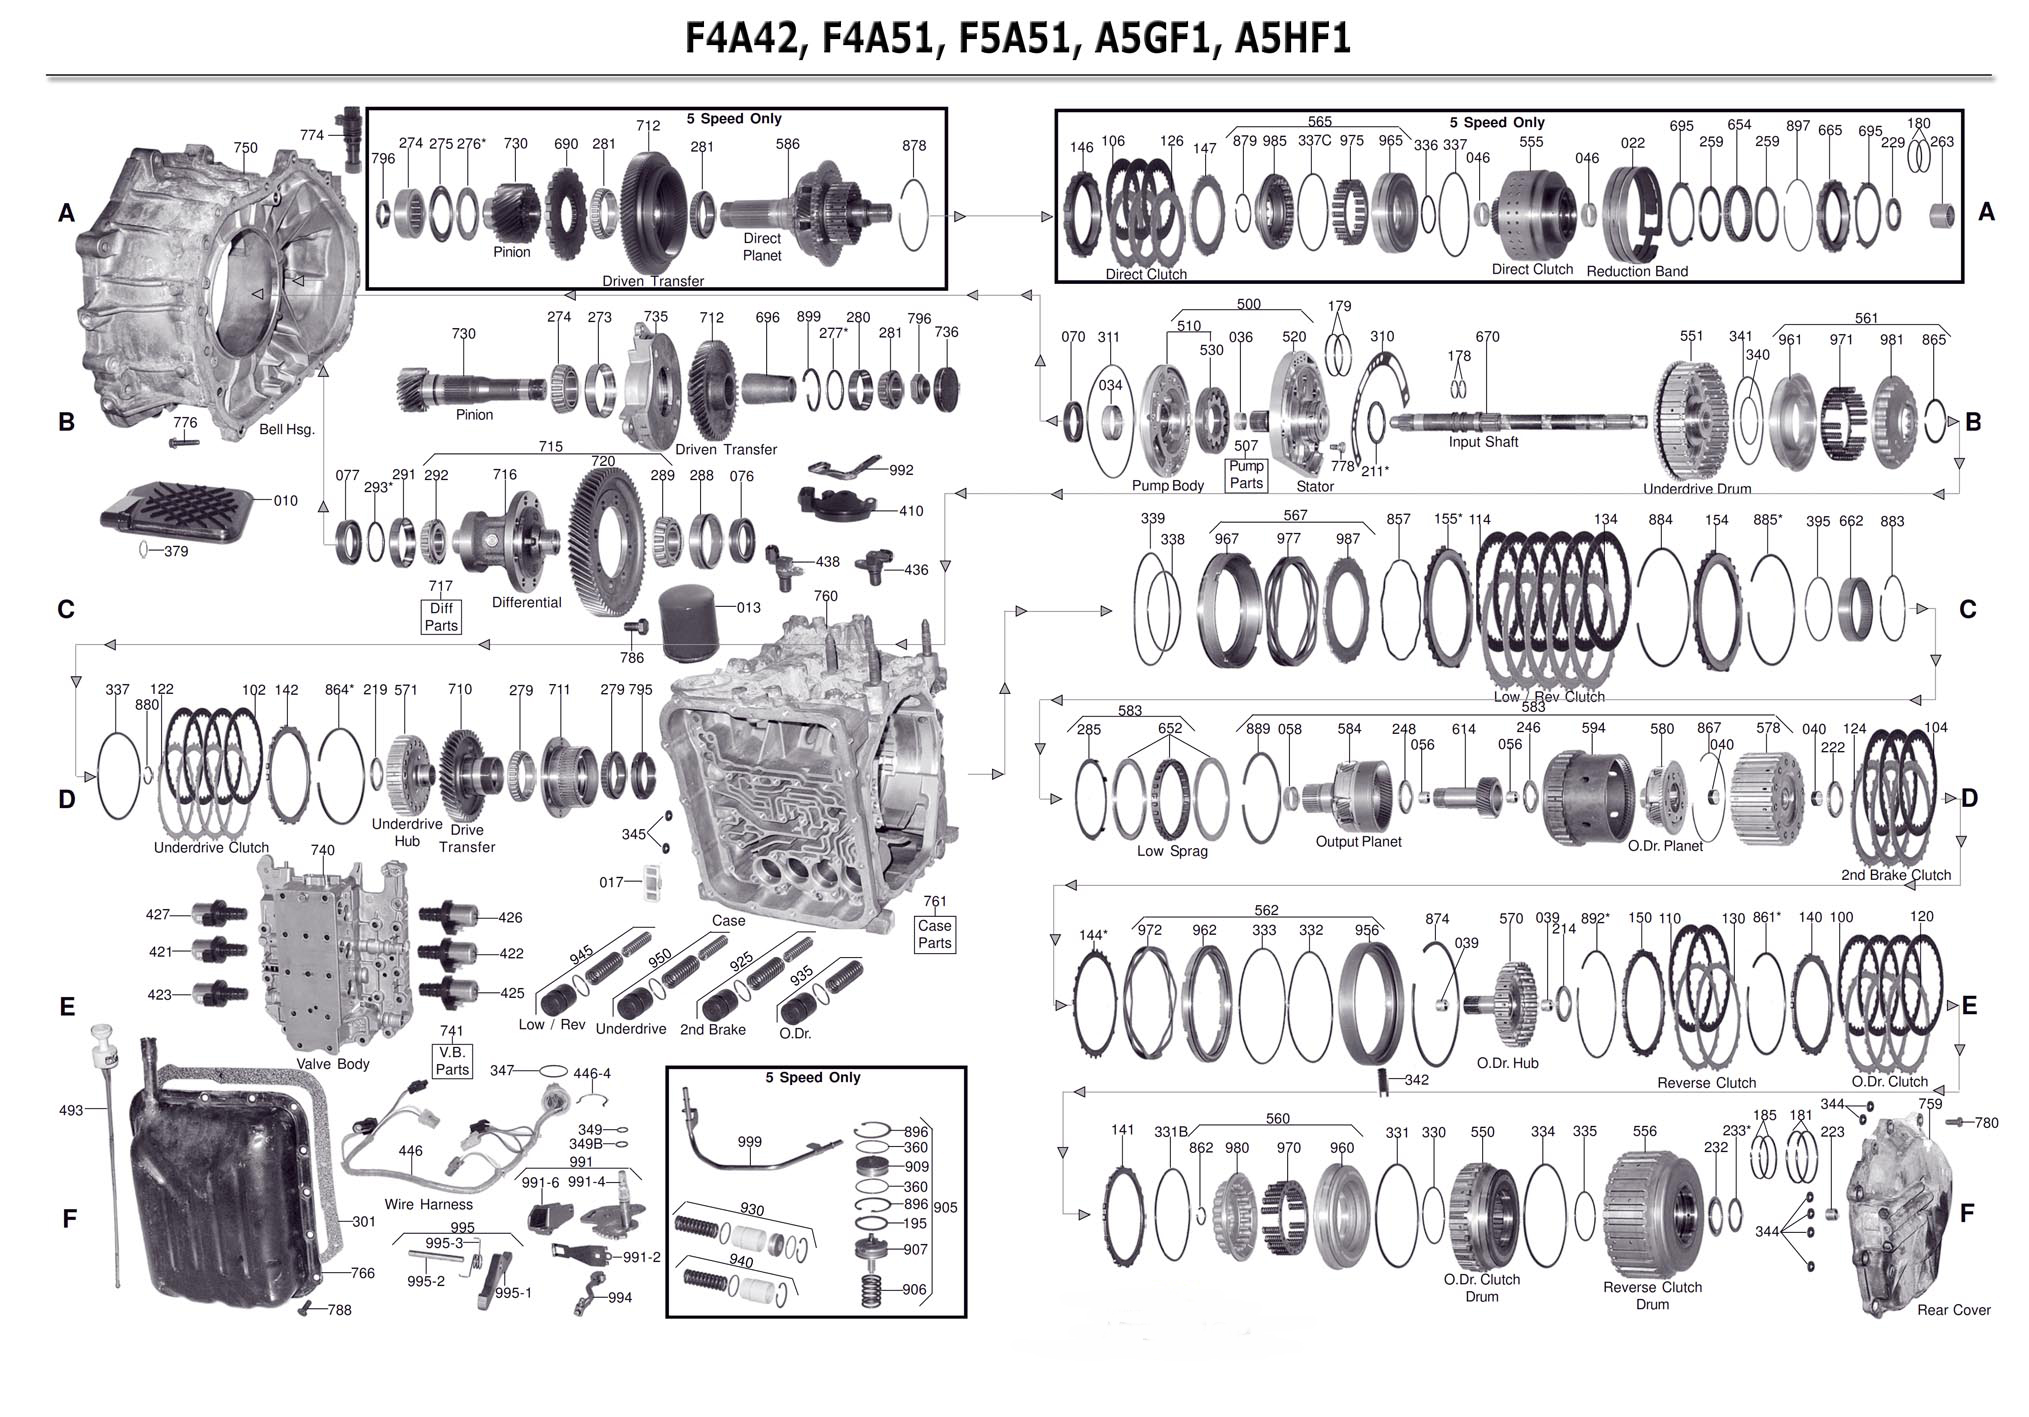 F4a41 F4a42 2 together with 6xkzd 2007 Kia Sorento Where Check Valve Controls in addition Automotive Industry Sario moreover 221776088363 further Bobcat 751 G Series Skid Steer Loader Parts Manual Pdf. on hyundai parts